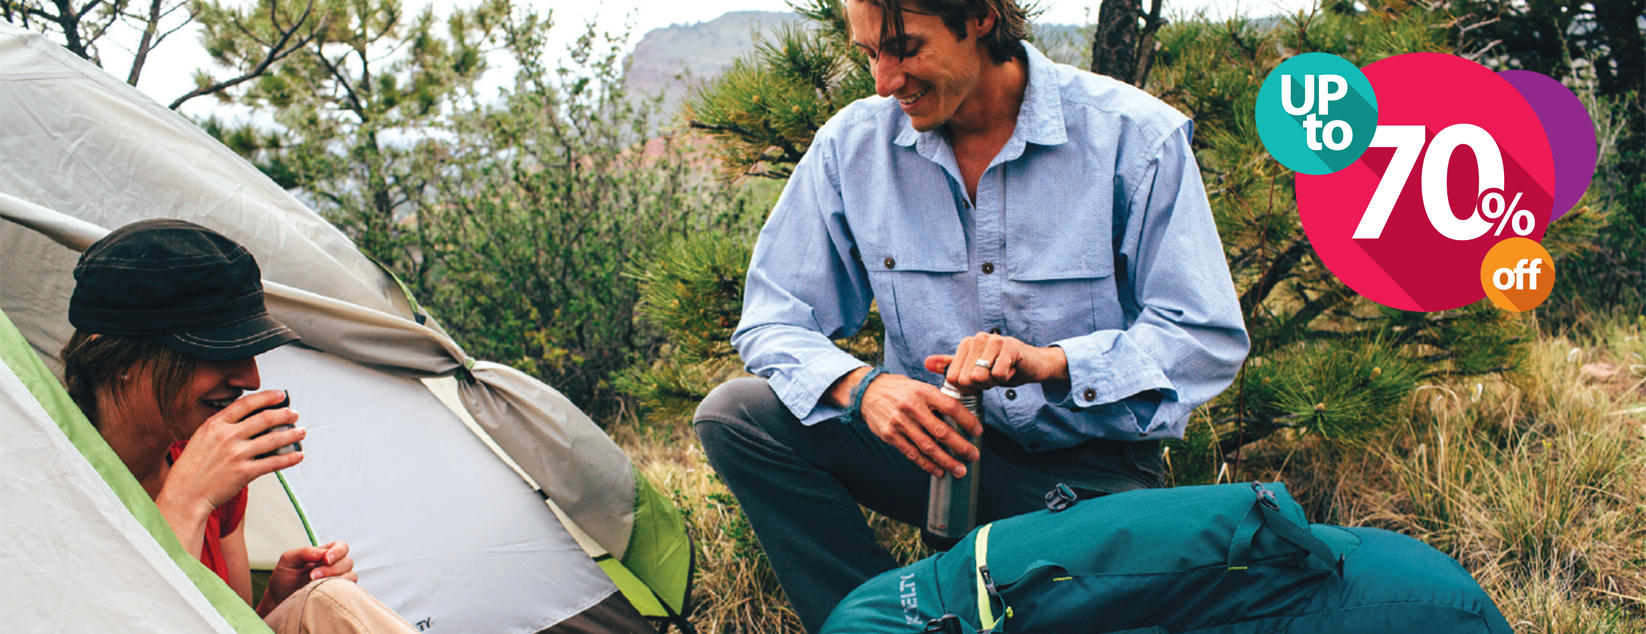 Camping Clearance Sale, save up to 70%